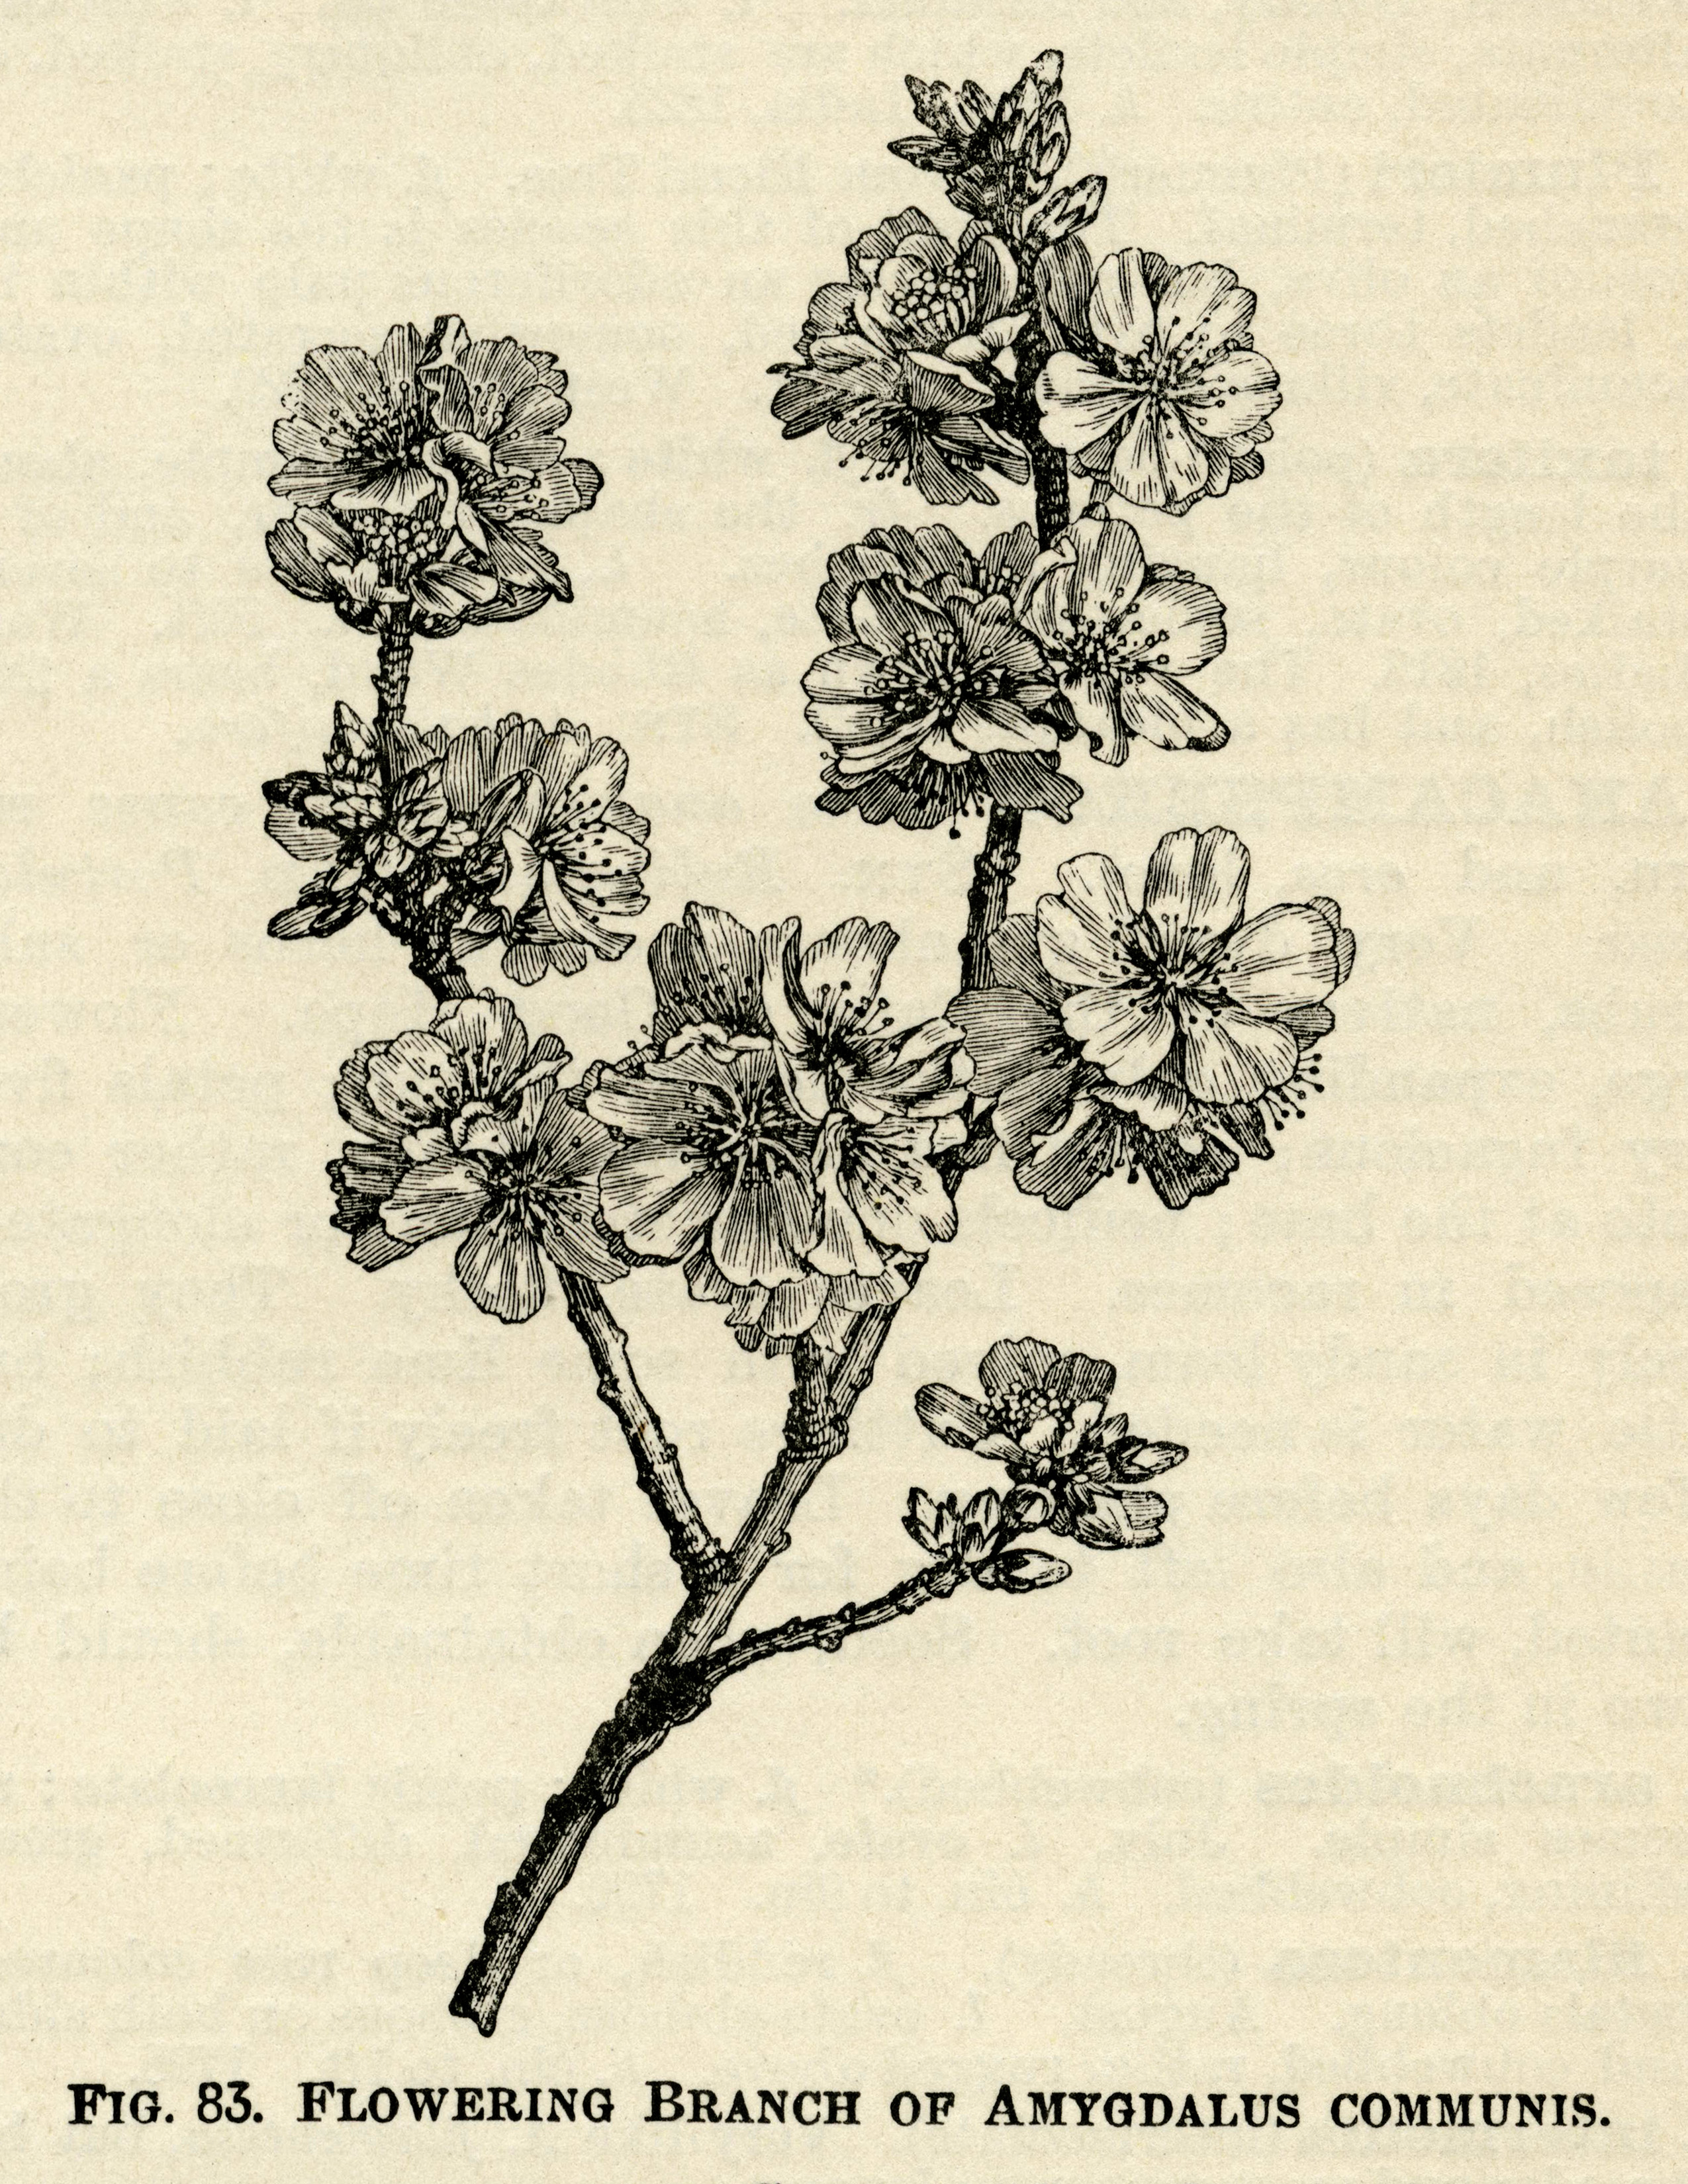 Illustrated Dictionary of Gardening–A Practical and Scientific Encyclopaedia of Horticulture, edited byGeorge Nicholson, circa 1885.